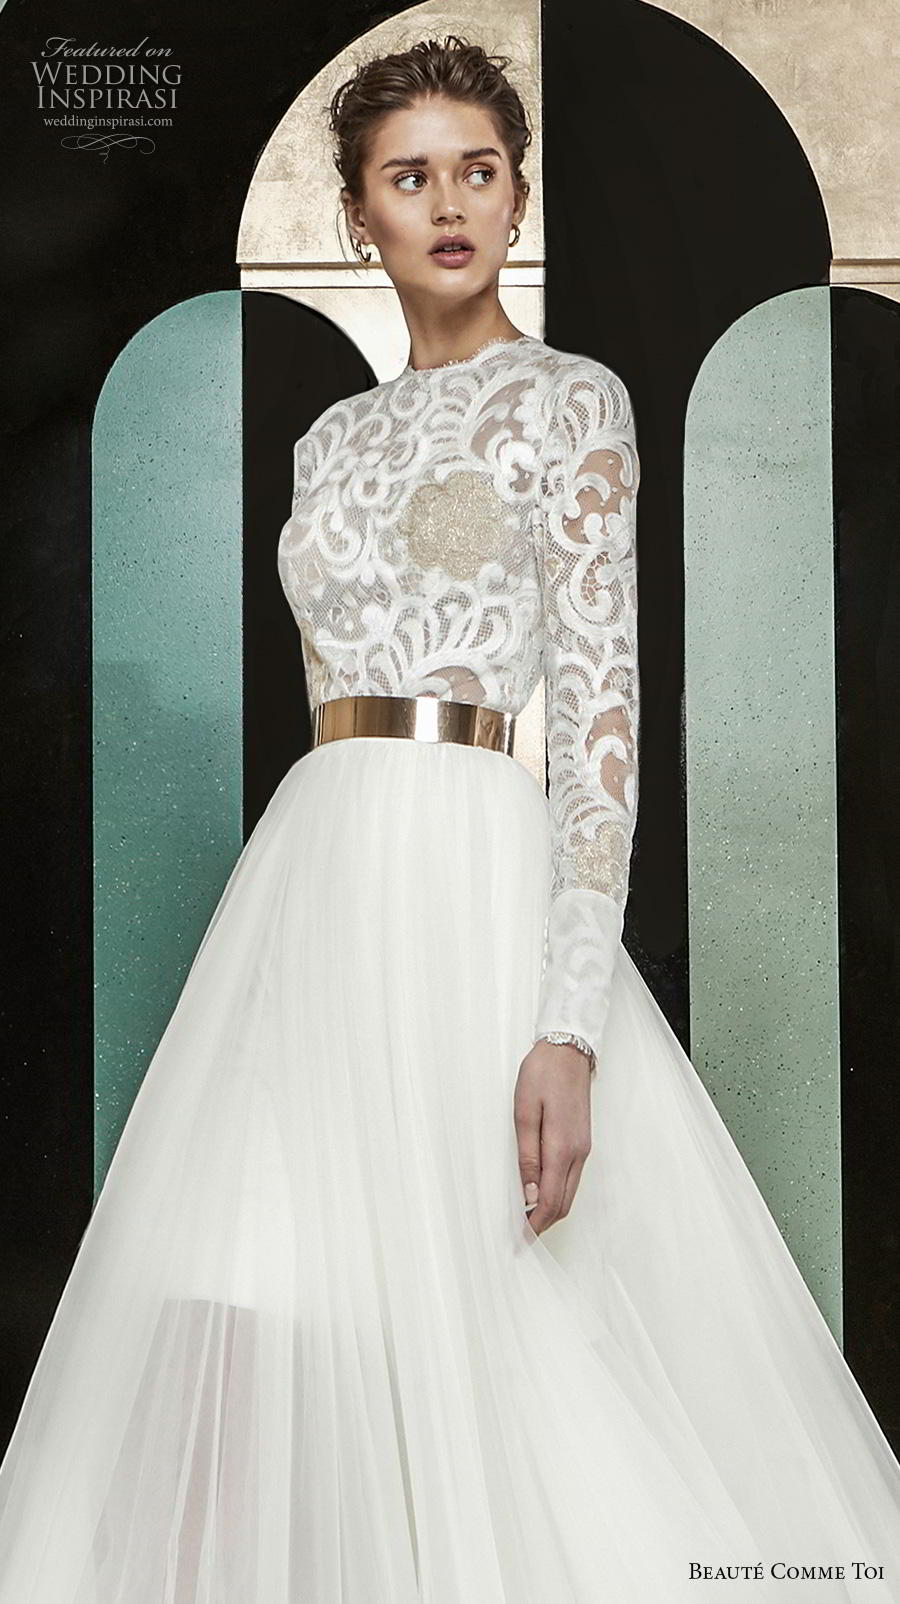 beaute comme toi 2019 bridal long sleeves jewel neck heavily embellished bodice modest glamorous classy a  line wedding dress lace button back chapel train (aude) zv